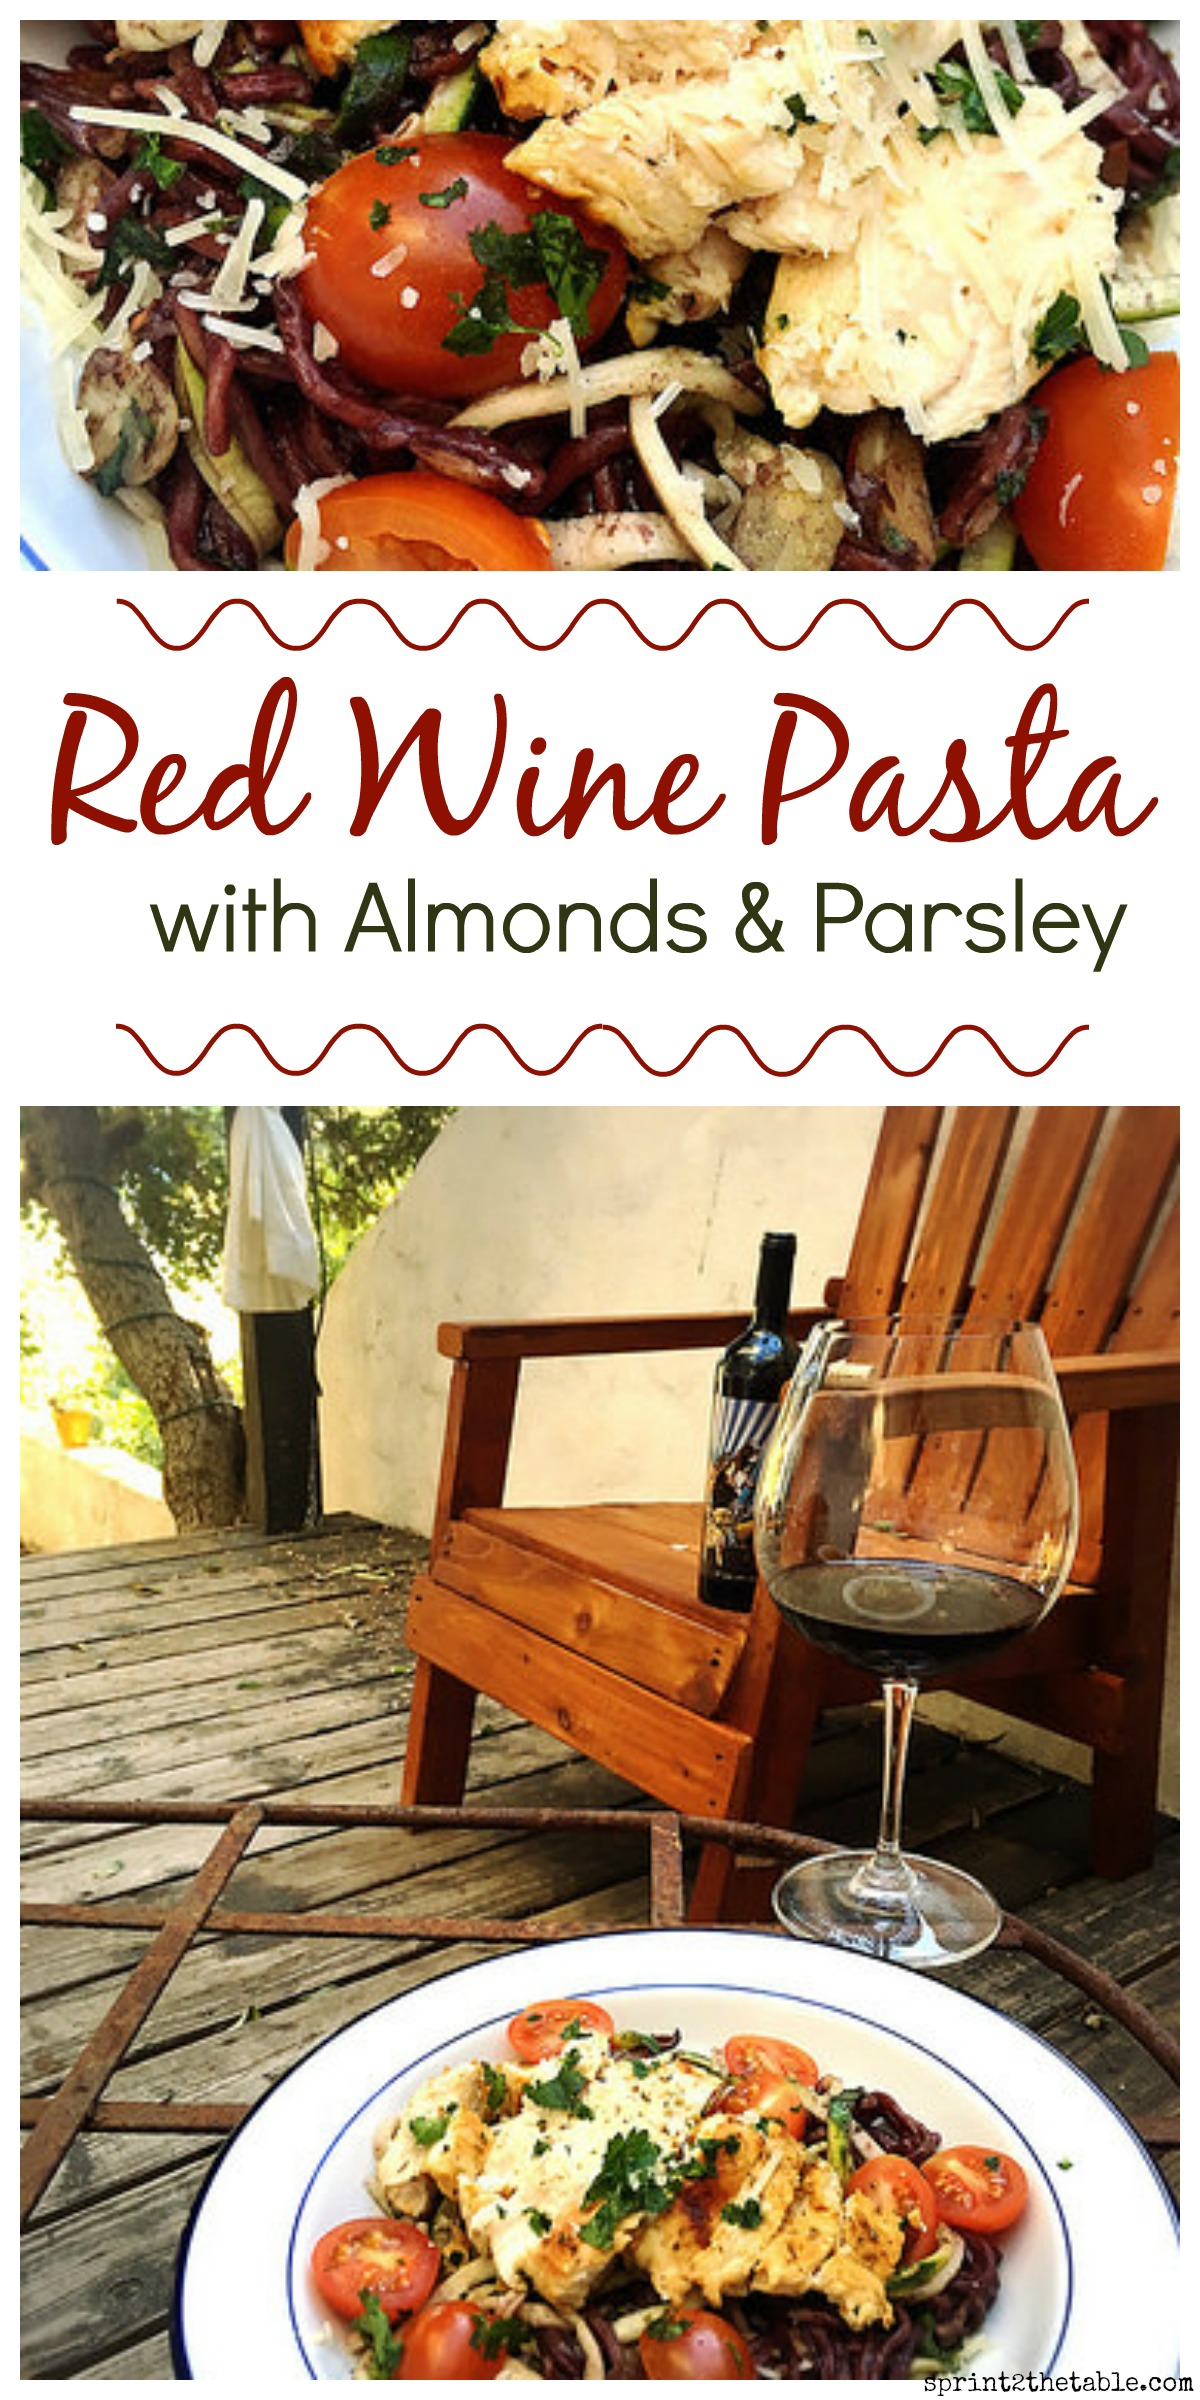 Red Wine Pasta with Almonds & Parsley. Just when you thought pasta couldn't get any better... try cooking it in red wine!